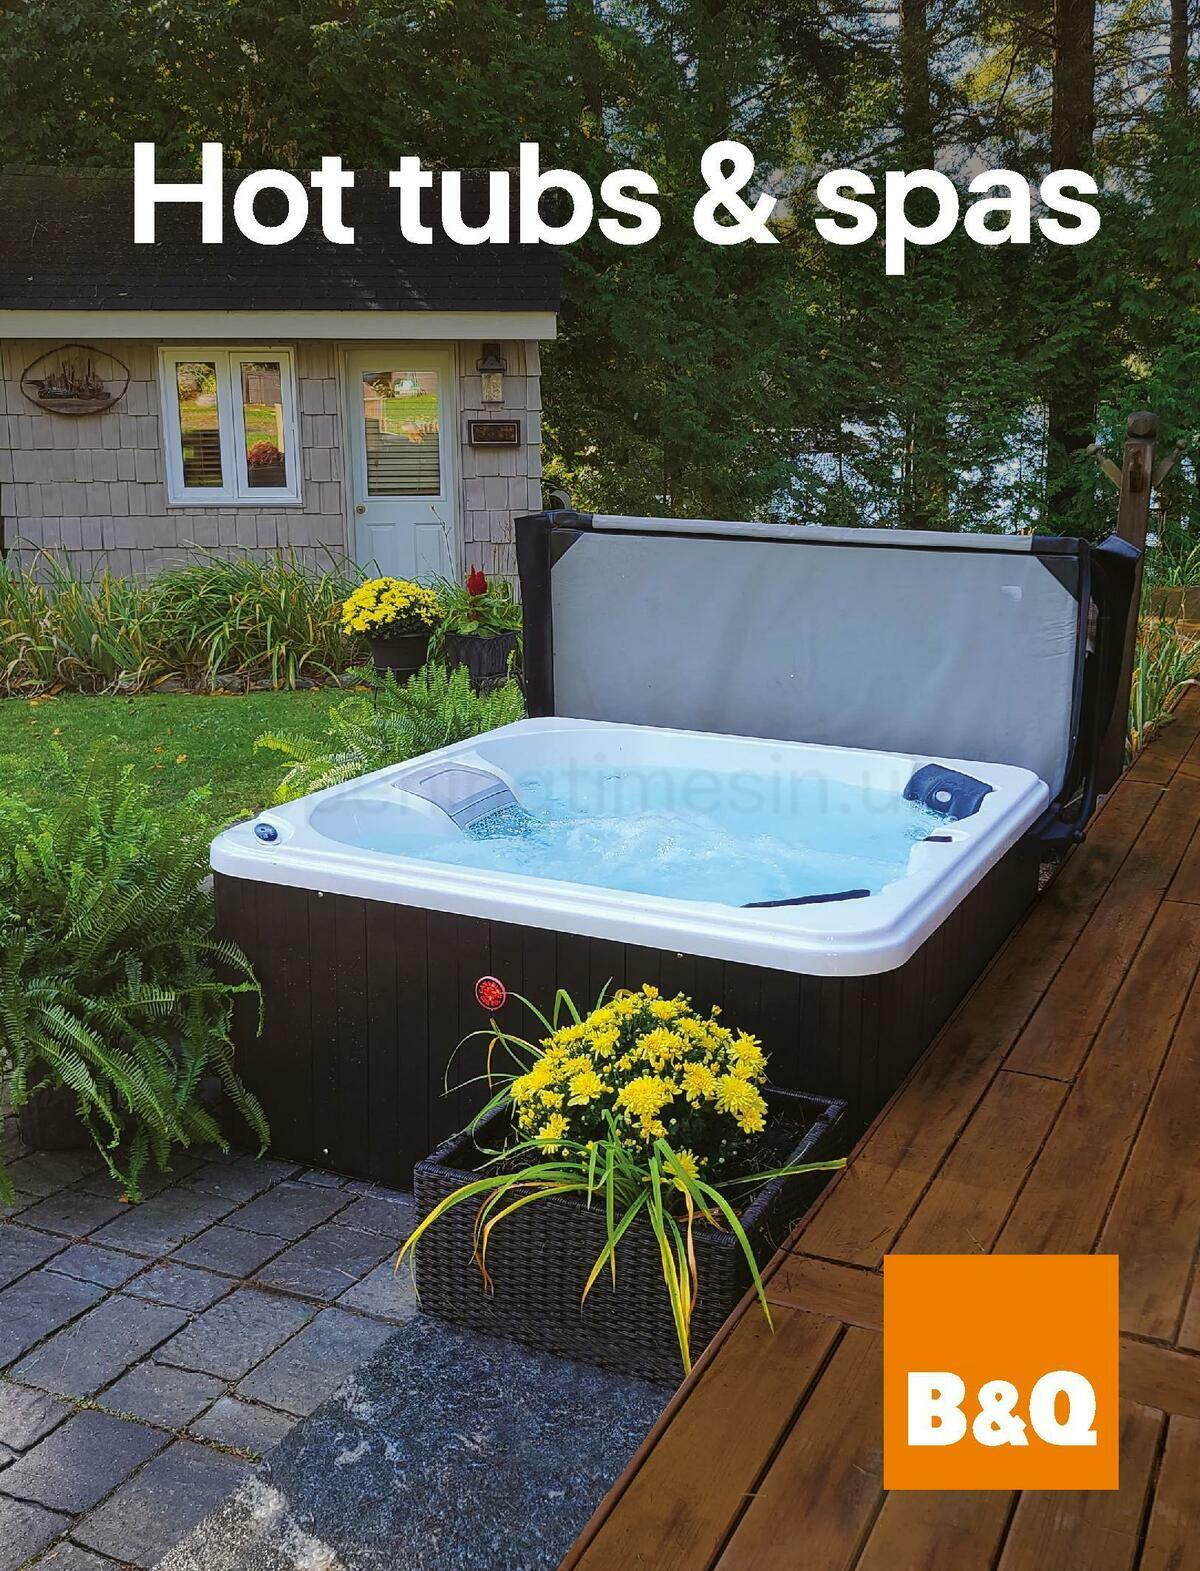 B&Q Hot Tub & Spa Collections Offers from March 1